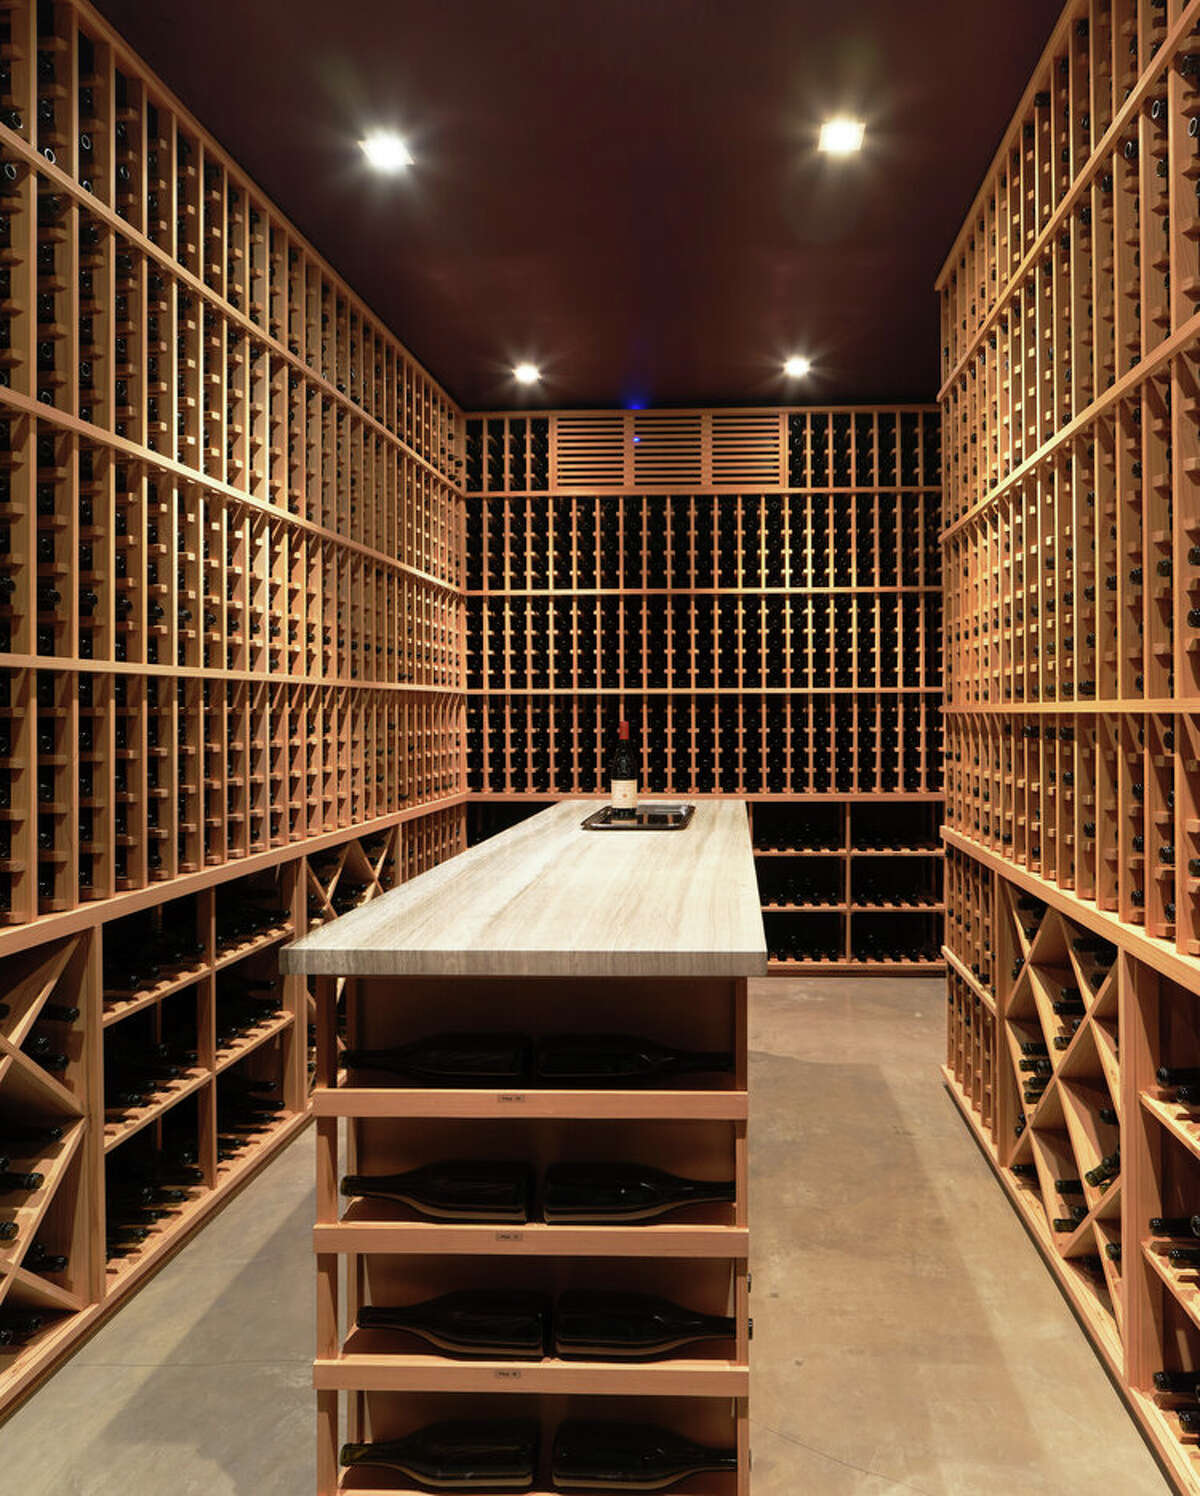 The aforementioned wine room is on the lowest level, which is accessed via a terraced entry that sits atop a two-car side-by-side garage. This floor also has a full bath and amedia room with 110-inch drop-down projection screen and surround sound.